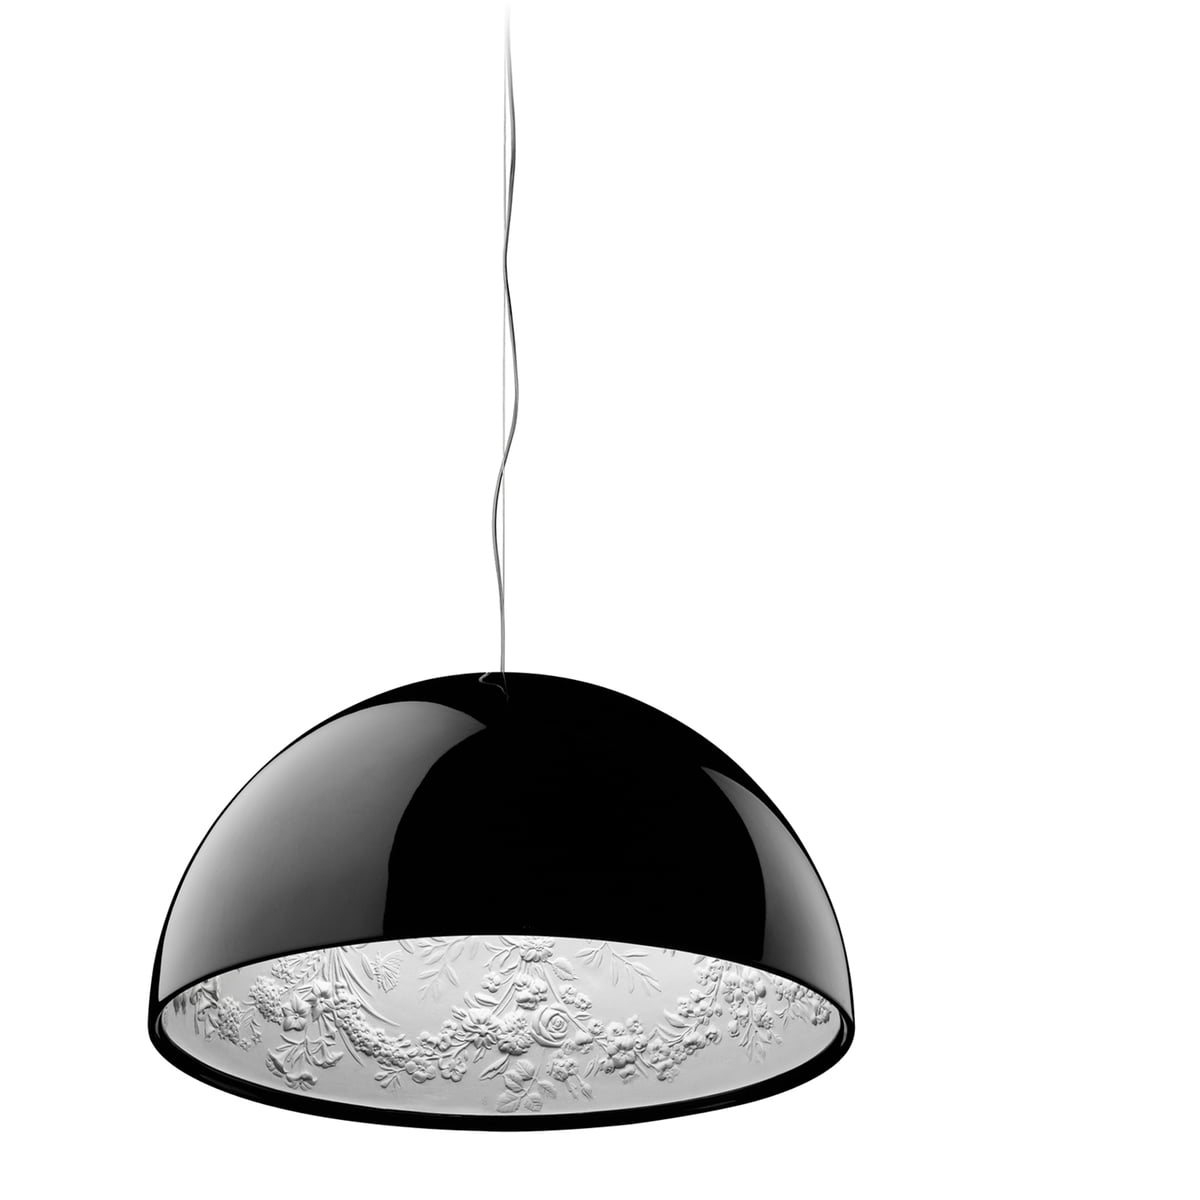 Sweet Skygarden Pendant Lamp By Flos In The Shop With Foxy Flos  Skygarden Pendant Lamp Black With Cool Garrion Bridge Garden Centre Also Welwyn Garden City Train In Addition Garden Design East London And Corner Garden Seat As Well As How To Take Care Of Garden Snails Additionally How To Attract Wildlife To Your Garden From Connoxcouk With   Foxy Skygarden Pendant Lamp By Flos In The Shop With Cool Flos  Skygarden Pendant Lamp Black And Sweet Garrion Bridge Garden Centre Also Welwyn Garden City Train In Addition Garden Design East London From Connoxcouk